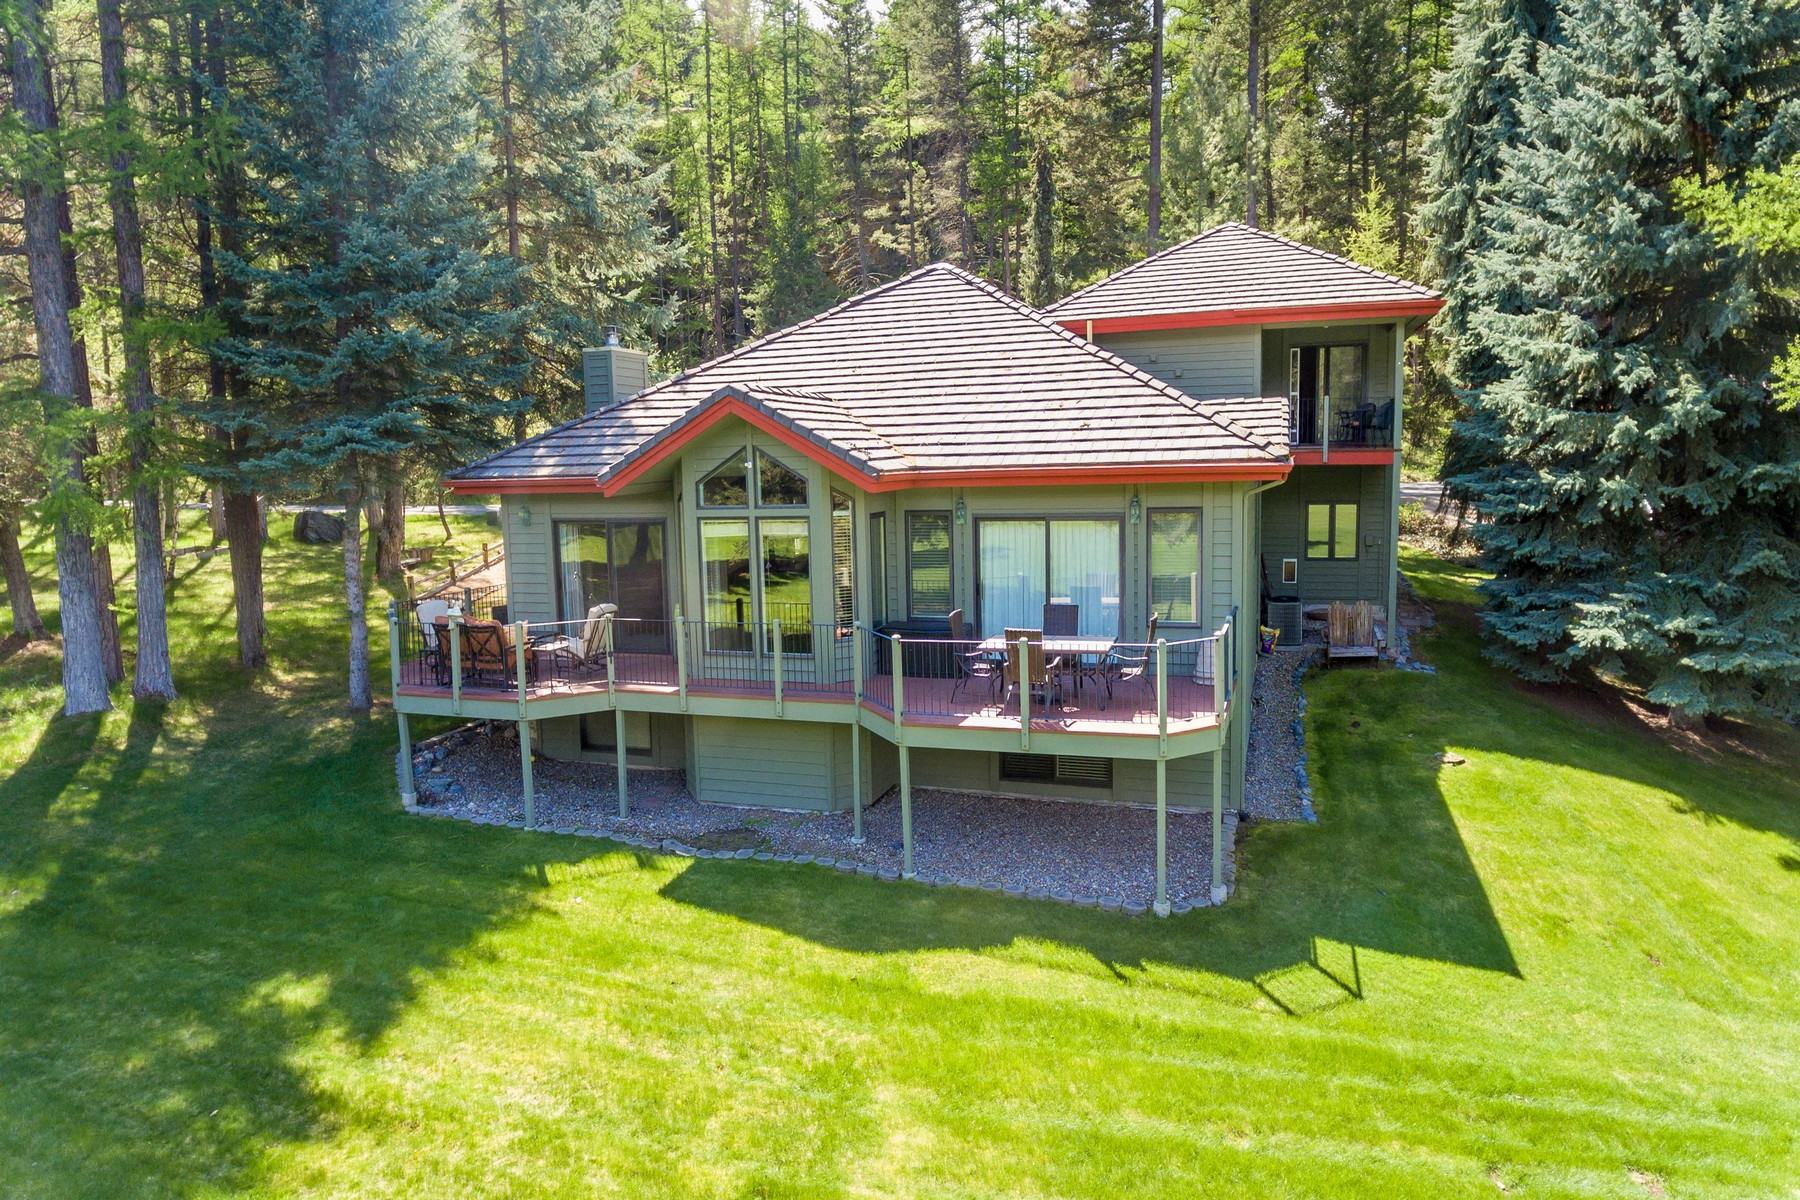 Single Family Home for Sale at 163 Golf Terrace, Bigfork, MT 59911 163 Golf Terr Bigfork, Montana 59911 United States